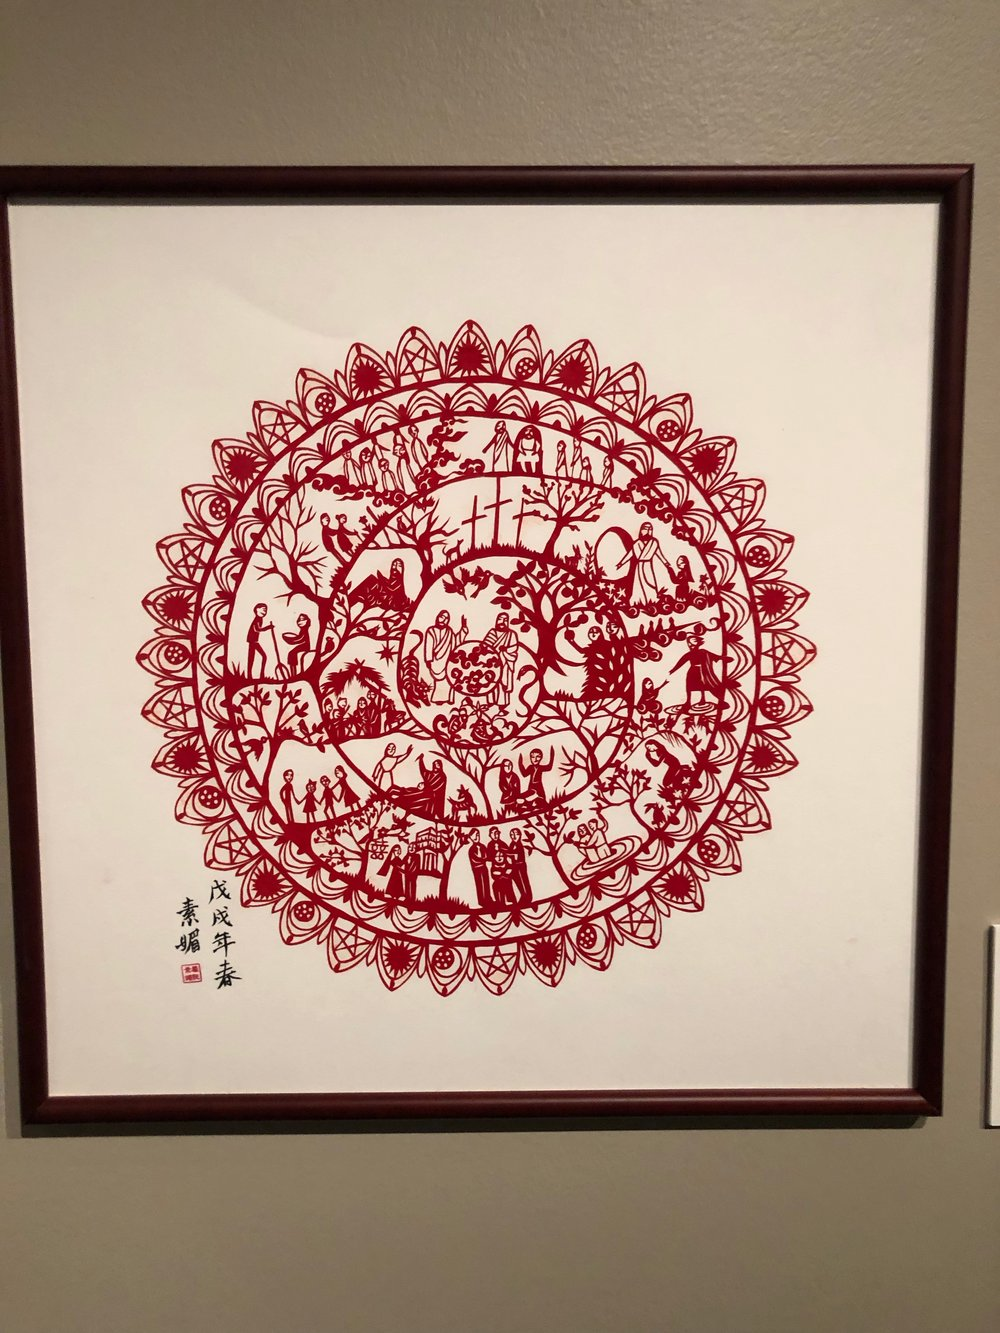 The Plan of Salvation  by Julie Yuen Yim. Chinese Paper Cutting.